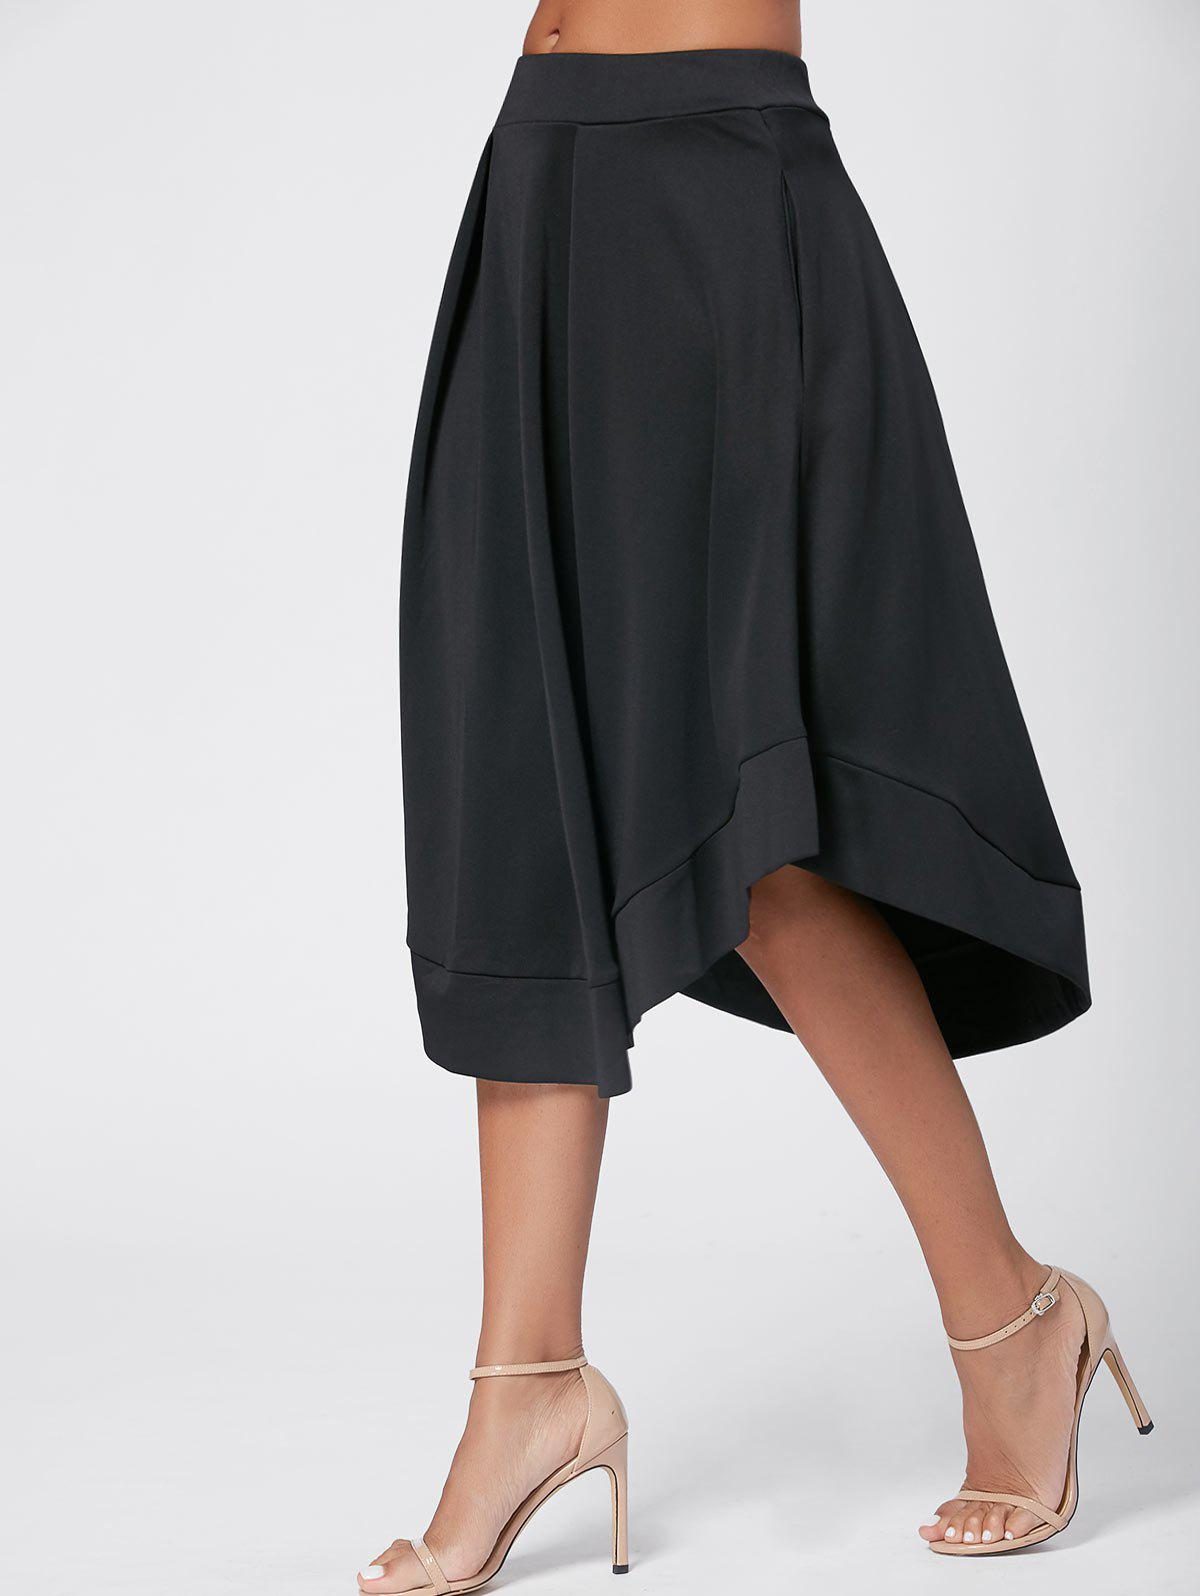 High Waist Midi Flared Skirt - BLACK S